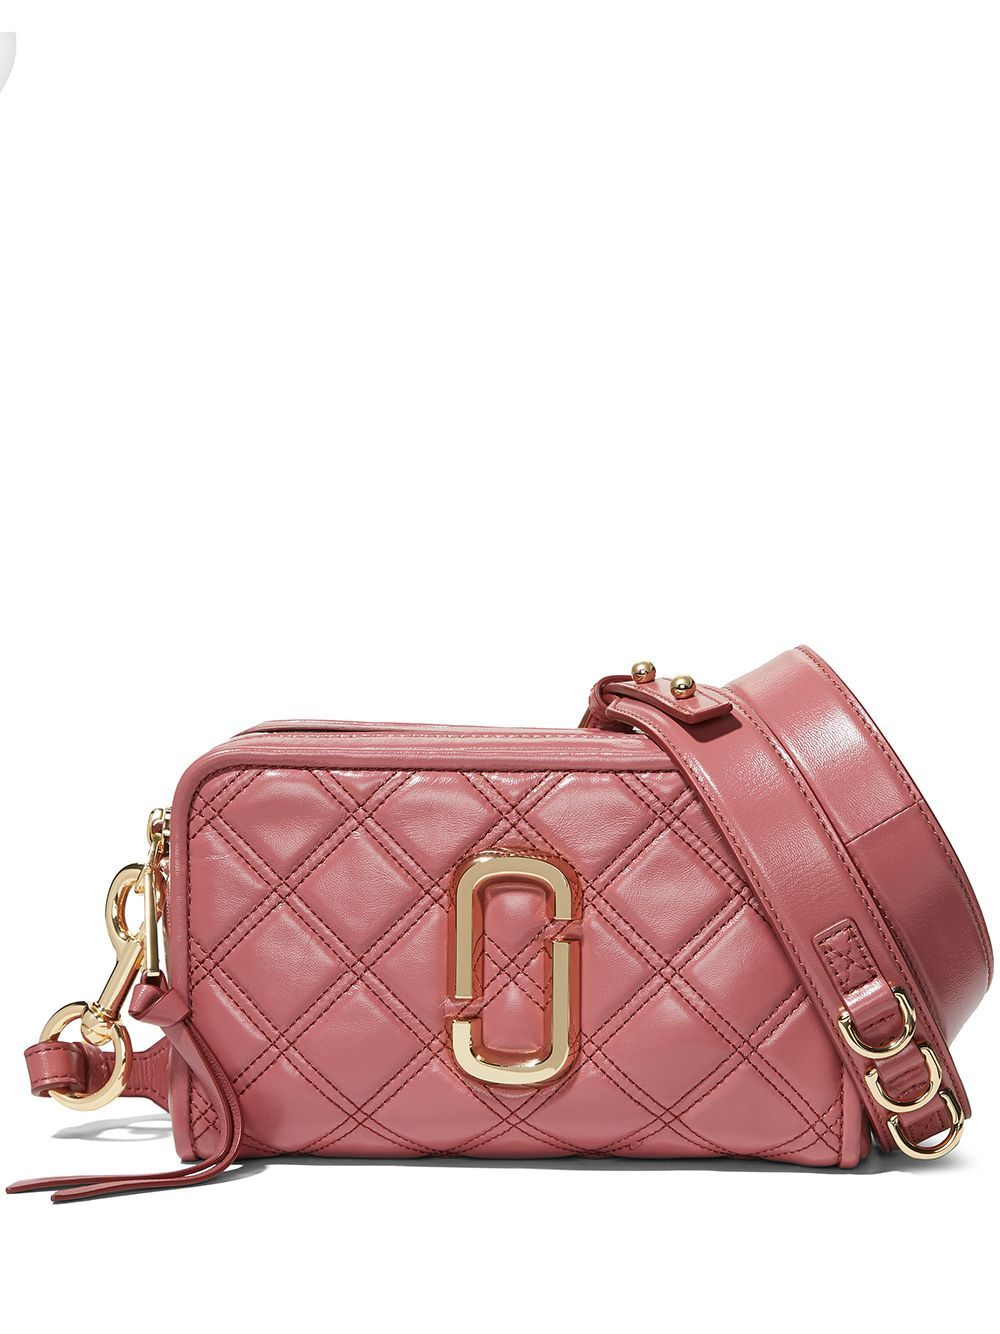 Pink lamb-skin The Quilted Softshot bag from Marc Jacobs featuring quilted, gold-tone logo plaque, t